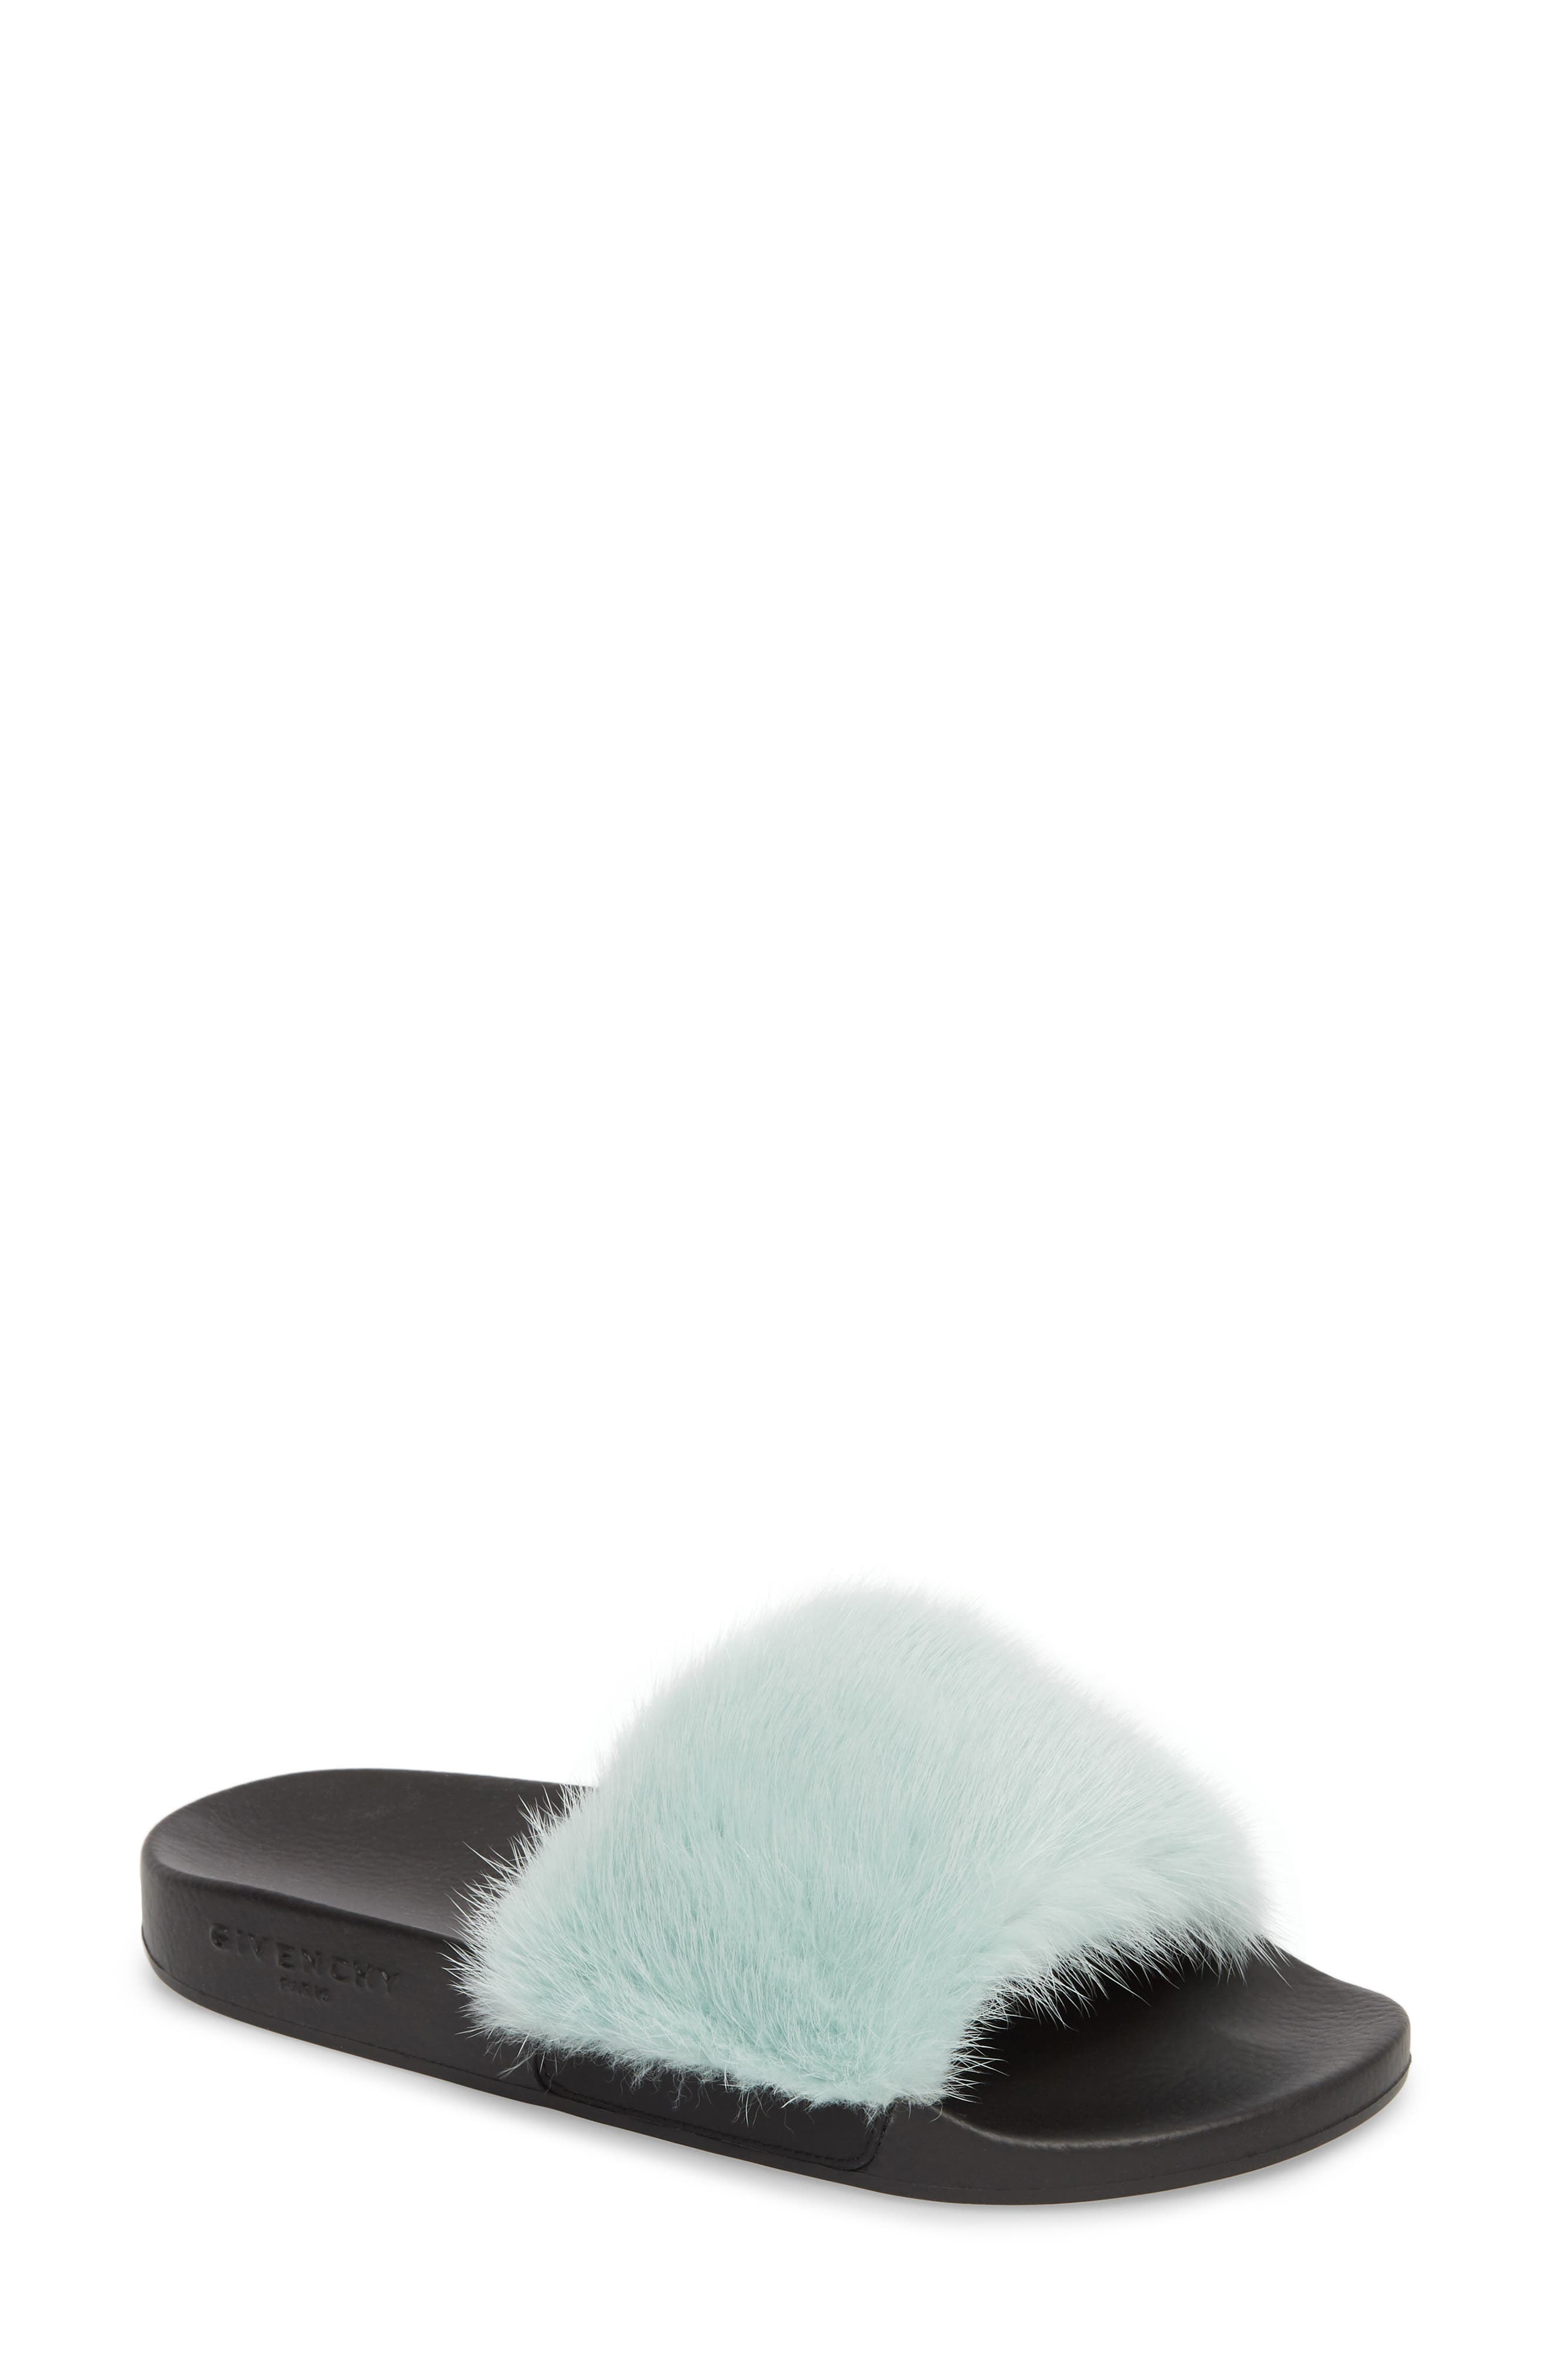 Genuine Mink Fur Slide Sandal,                             Main thumbnail 1, color,                             Aqua